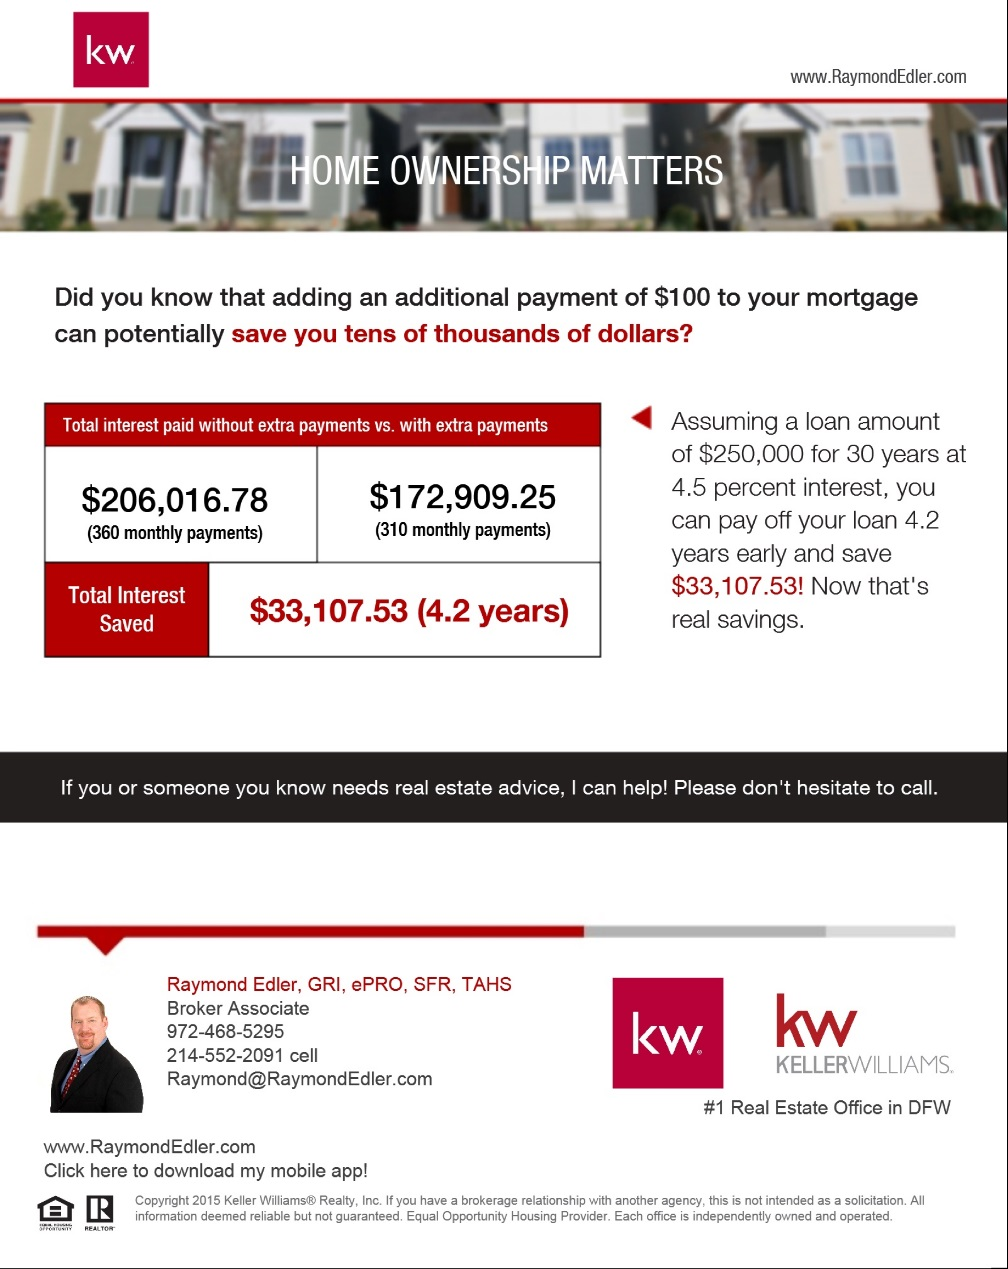 Did you know that adding an additional payment of $100 to your mortgage can potentially save you tens of thousands of dollars?